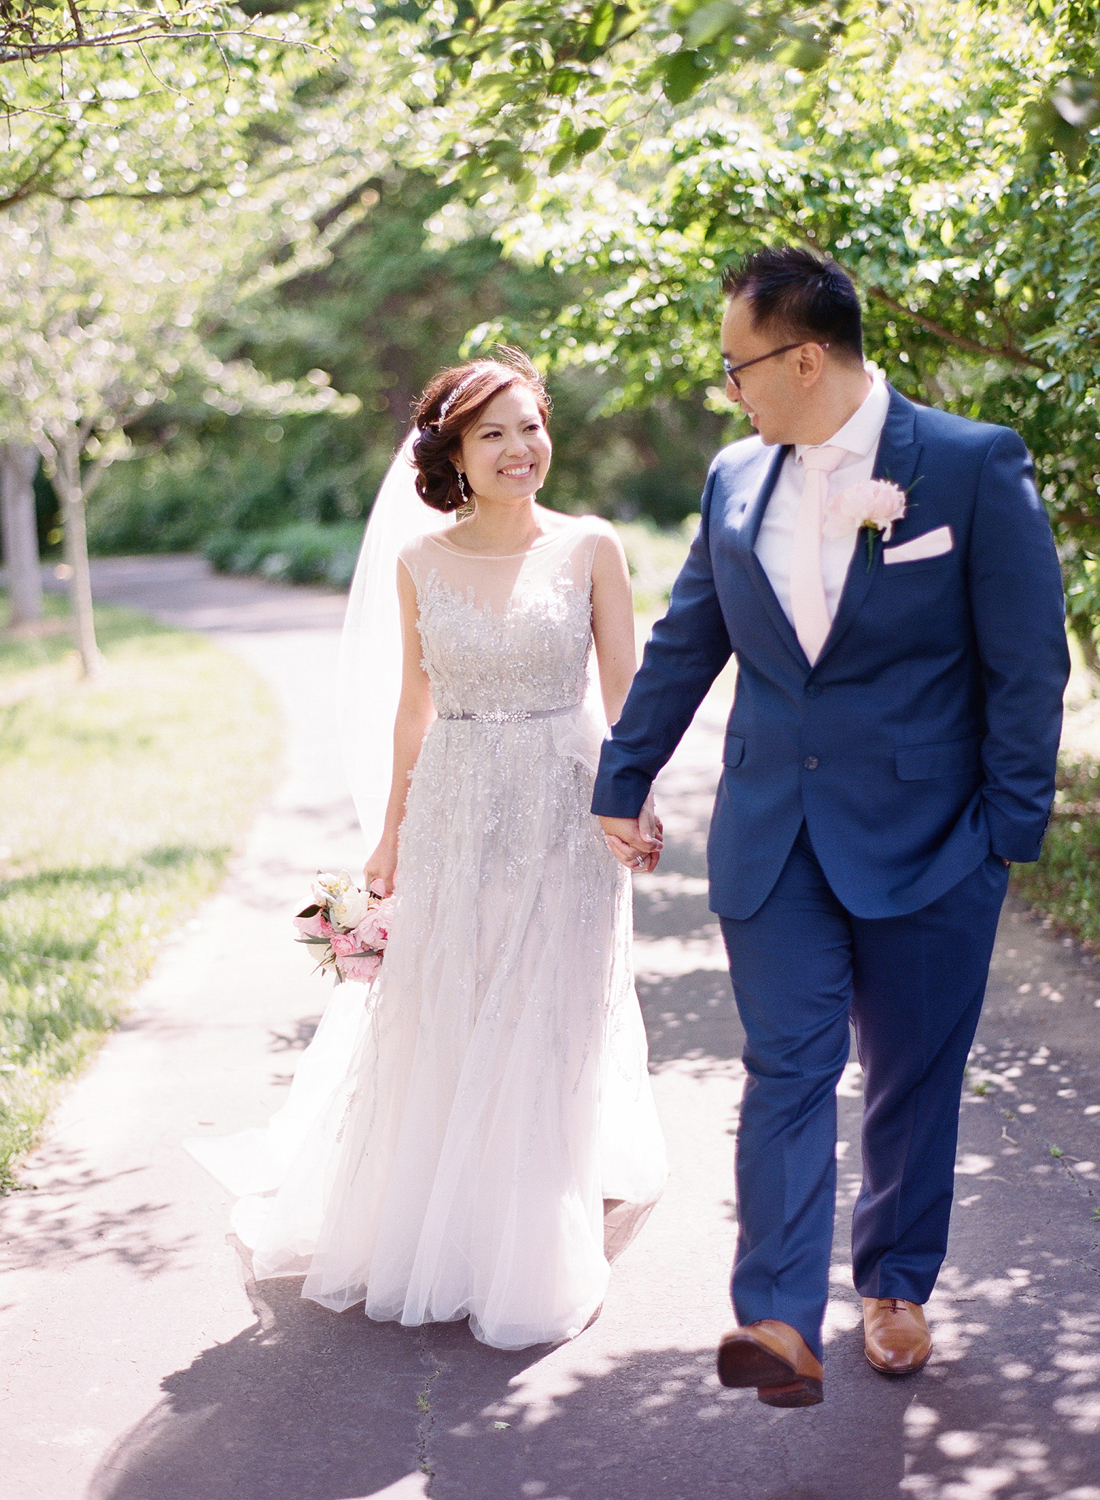 meadowlark wedding photos, bride and groom